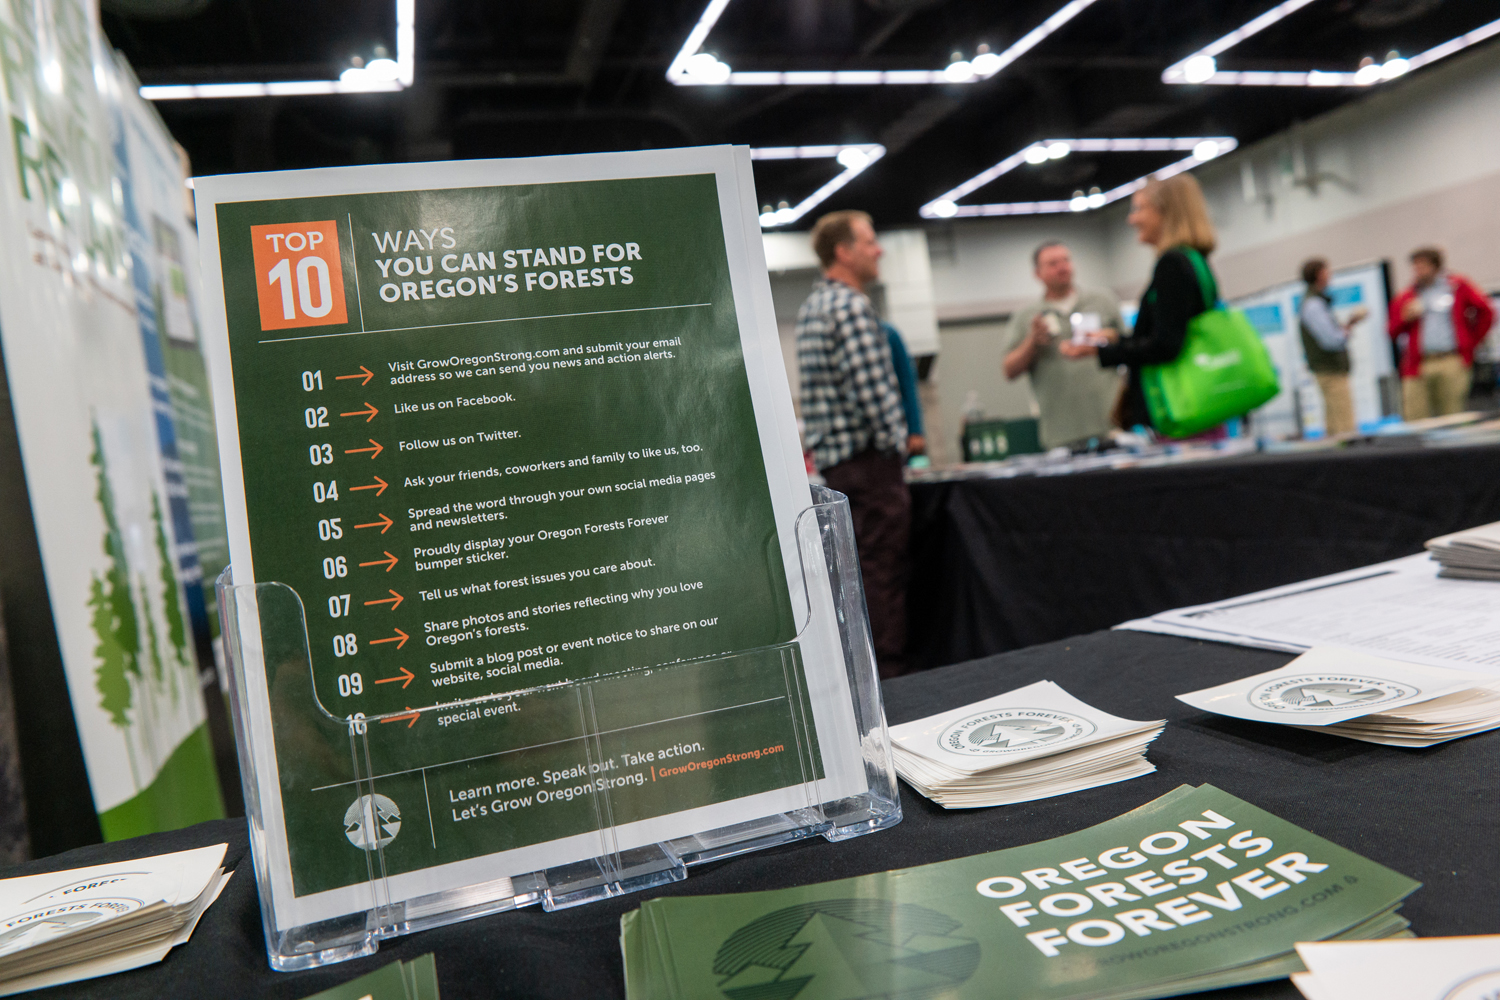 Wasim Muklashy Photography_-SAM_5082_Society of American Foresters National Convention_423.jpg